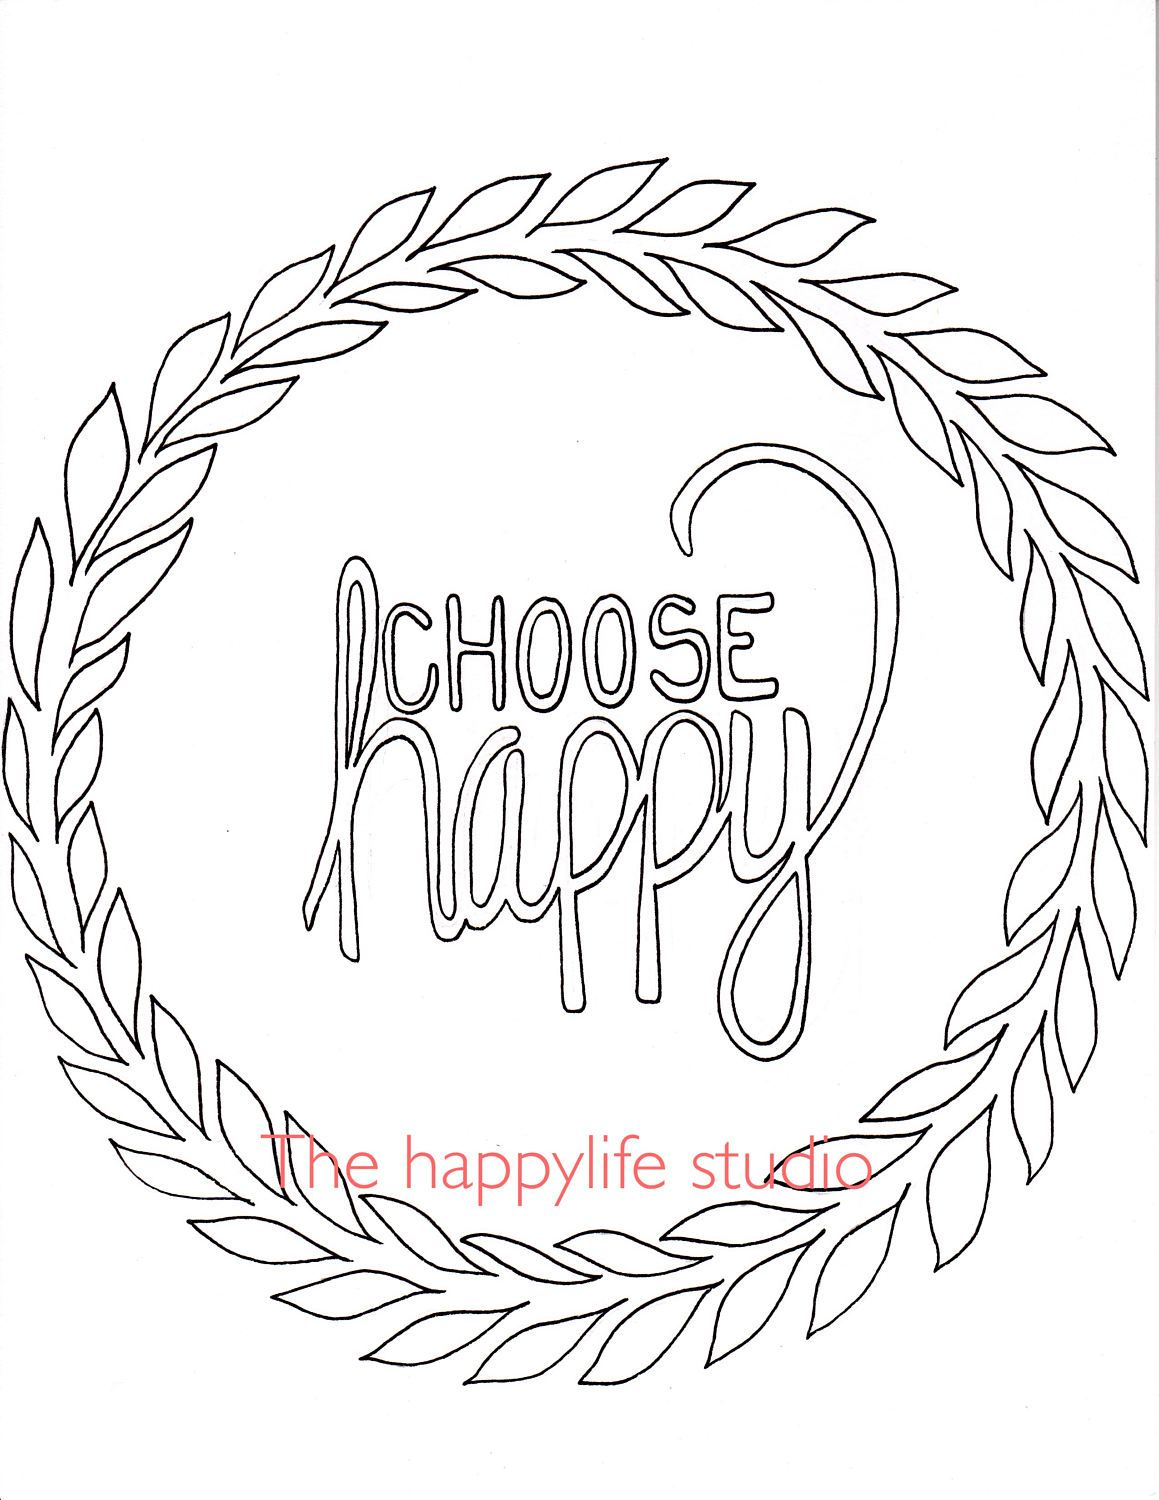 Choose happy coloring page simple adult coloring page